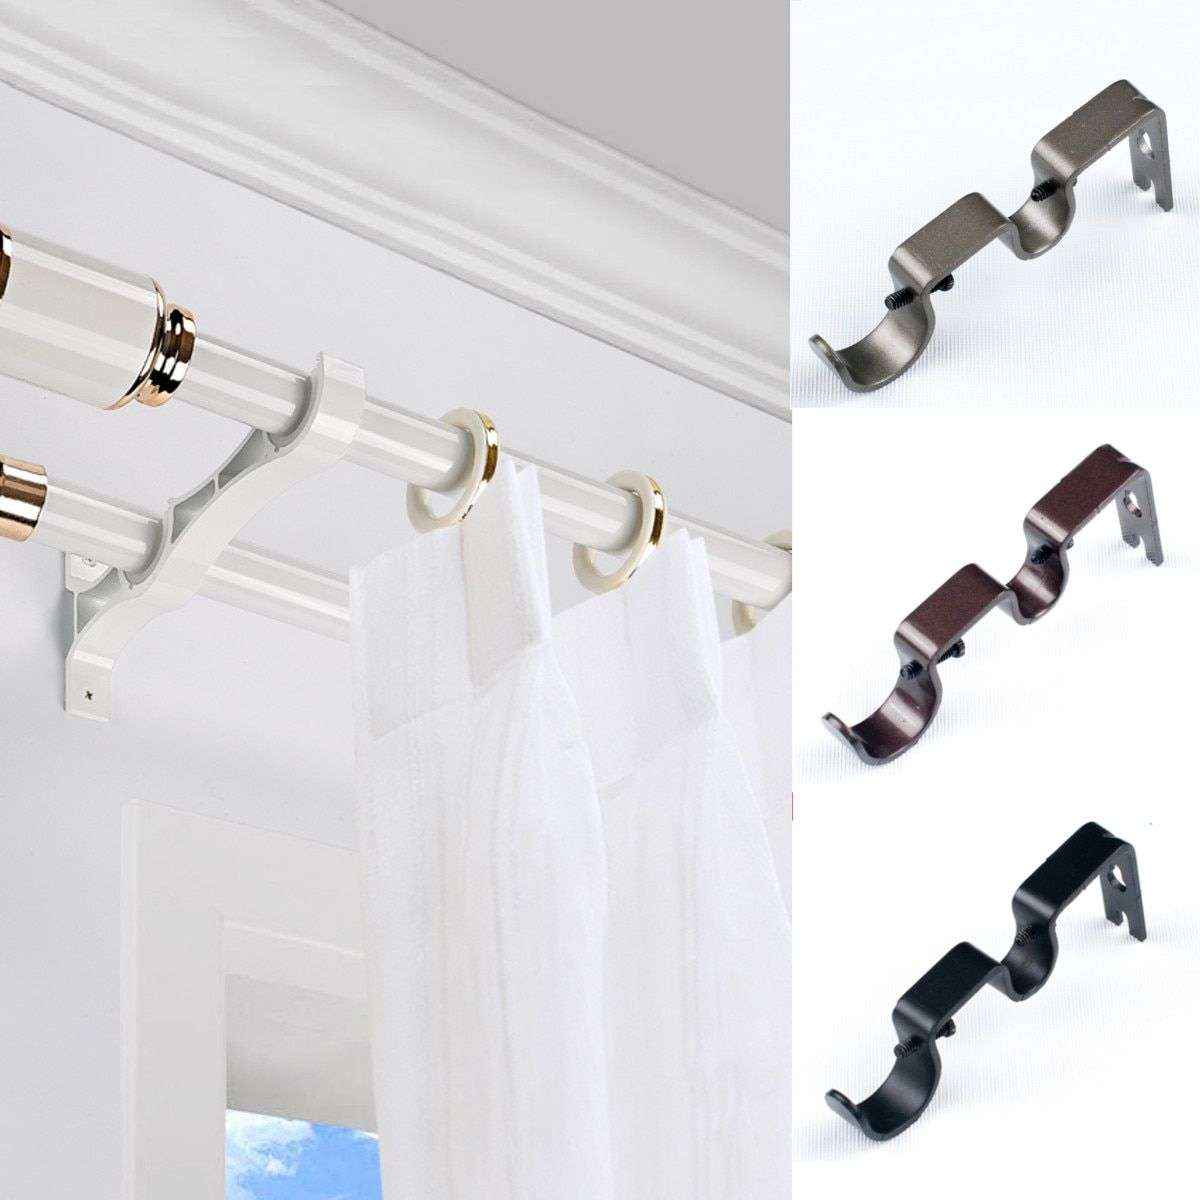 Curtain Track Hooks Fitting In 2020 Curtains Bacon And Egg Casserole Store Interiors